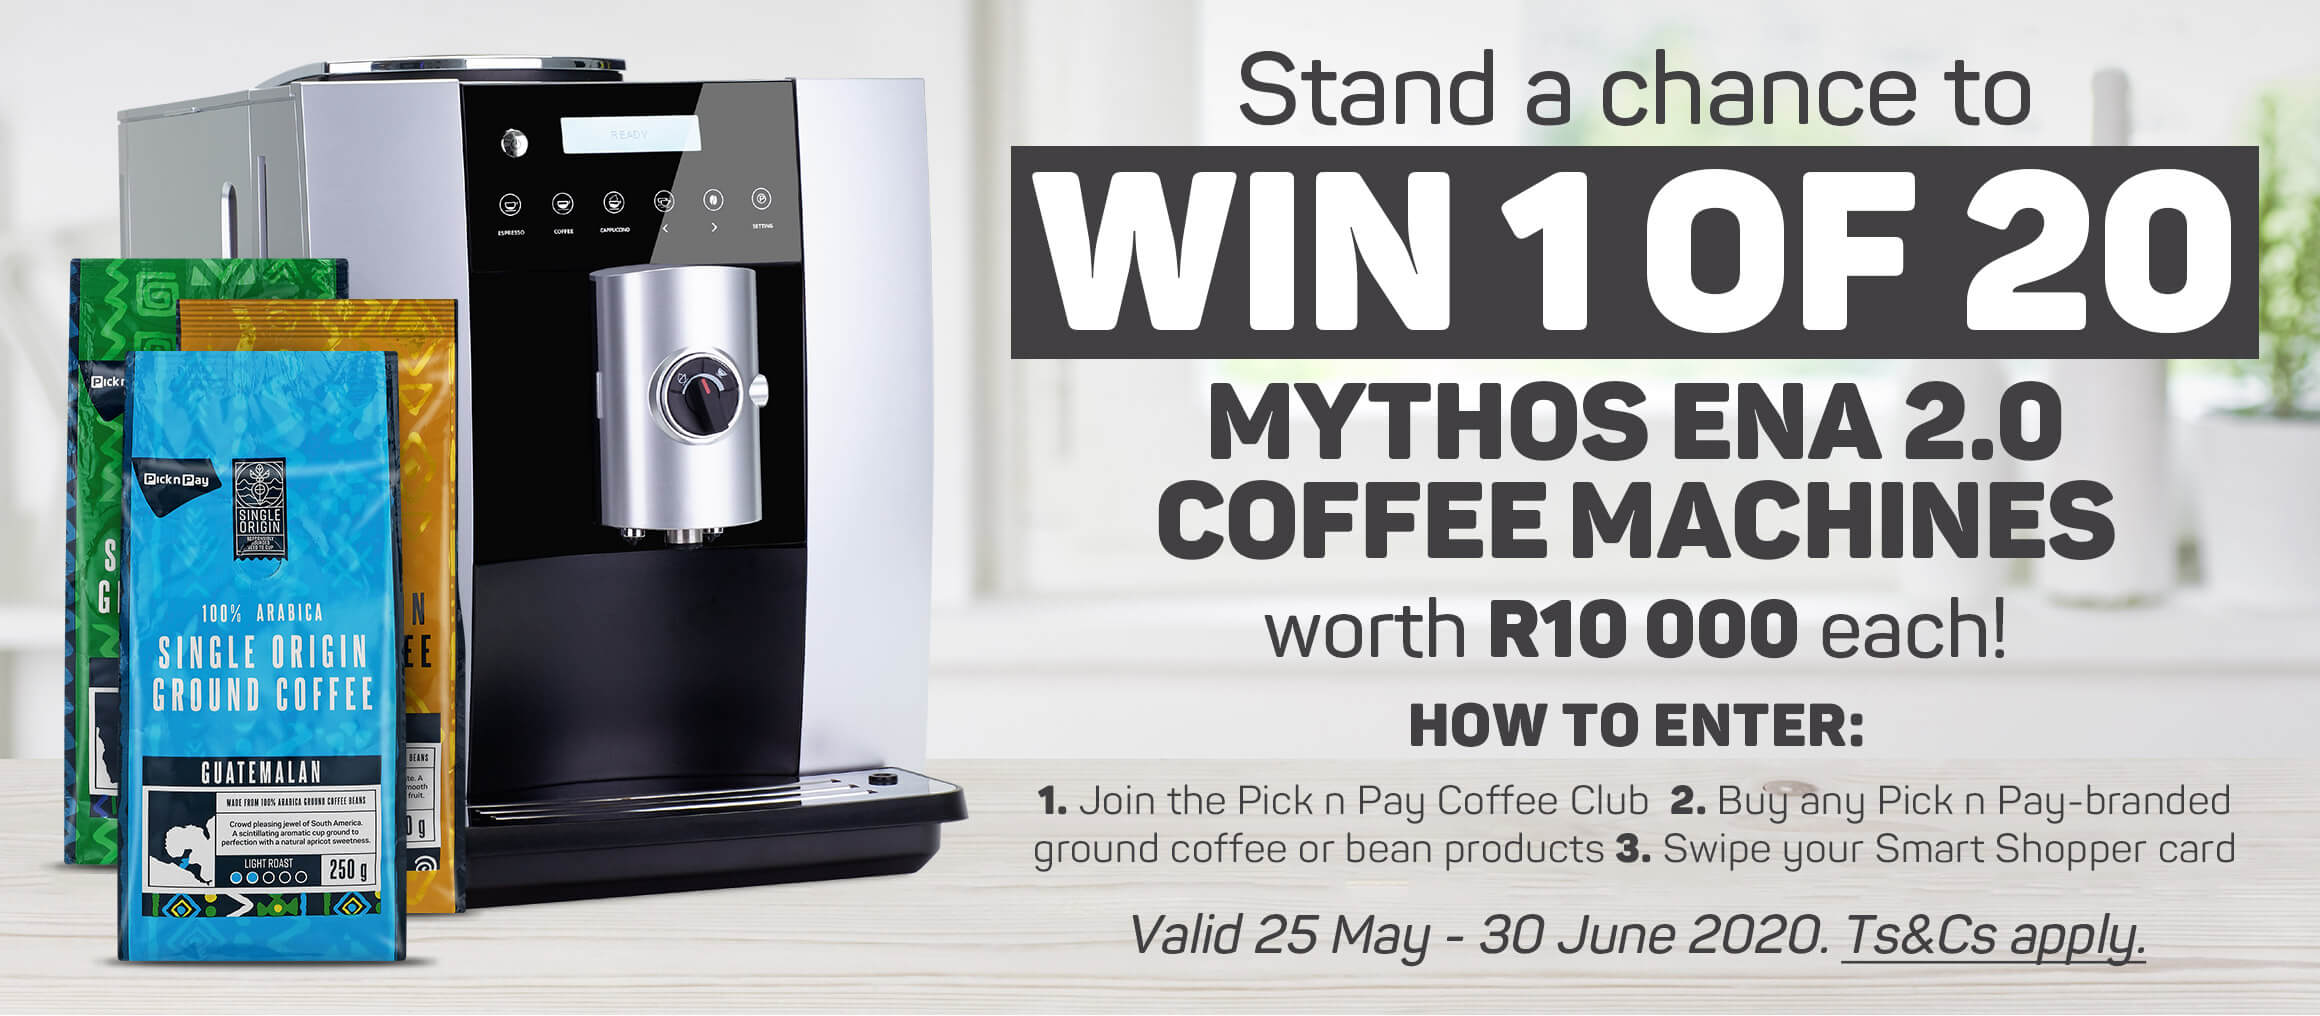 Stand a chance to win 1 of 20 Mythis Ena 2.0 coffee machines worth R10 000 each!